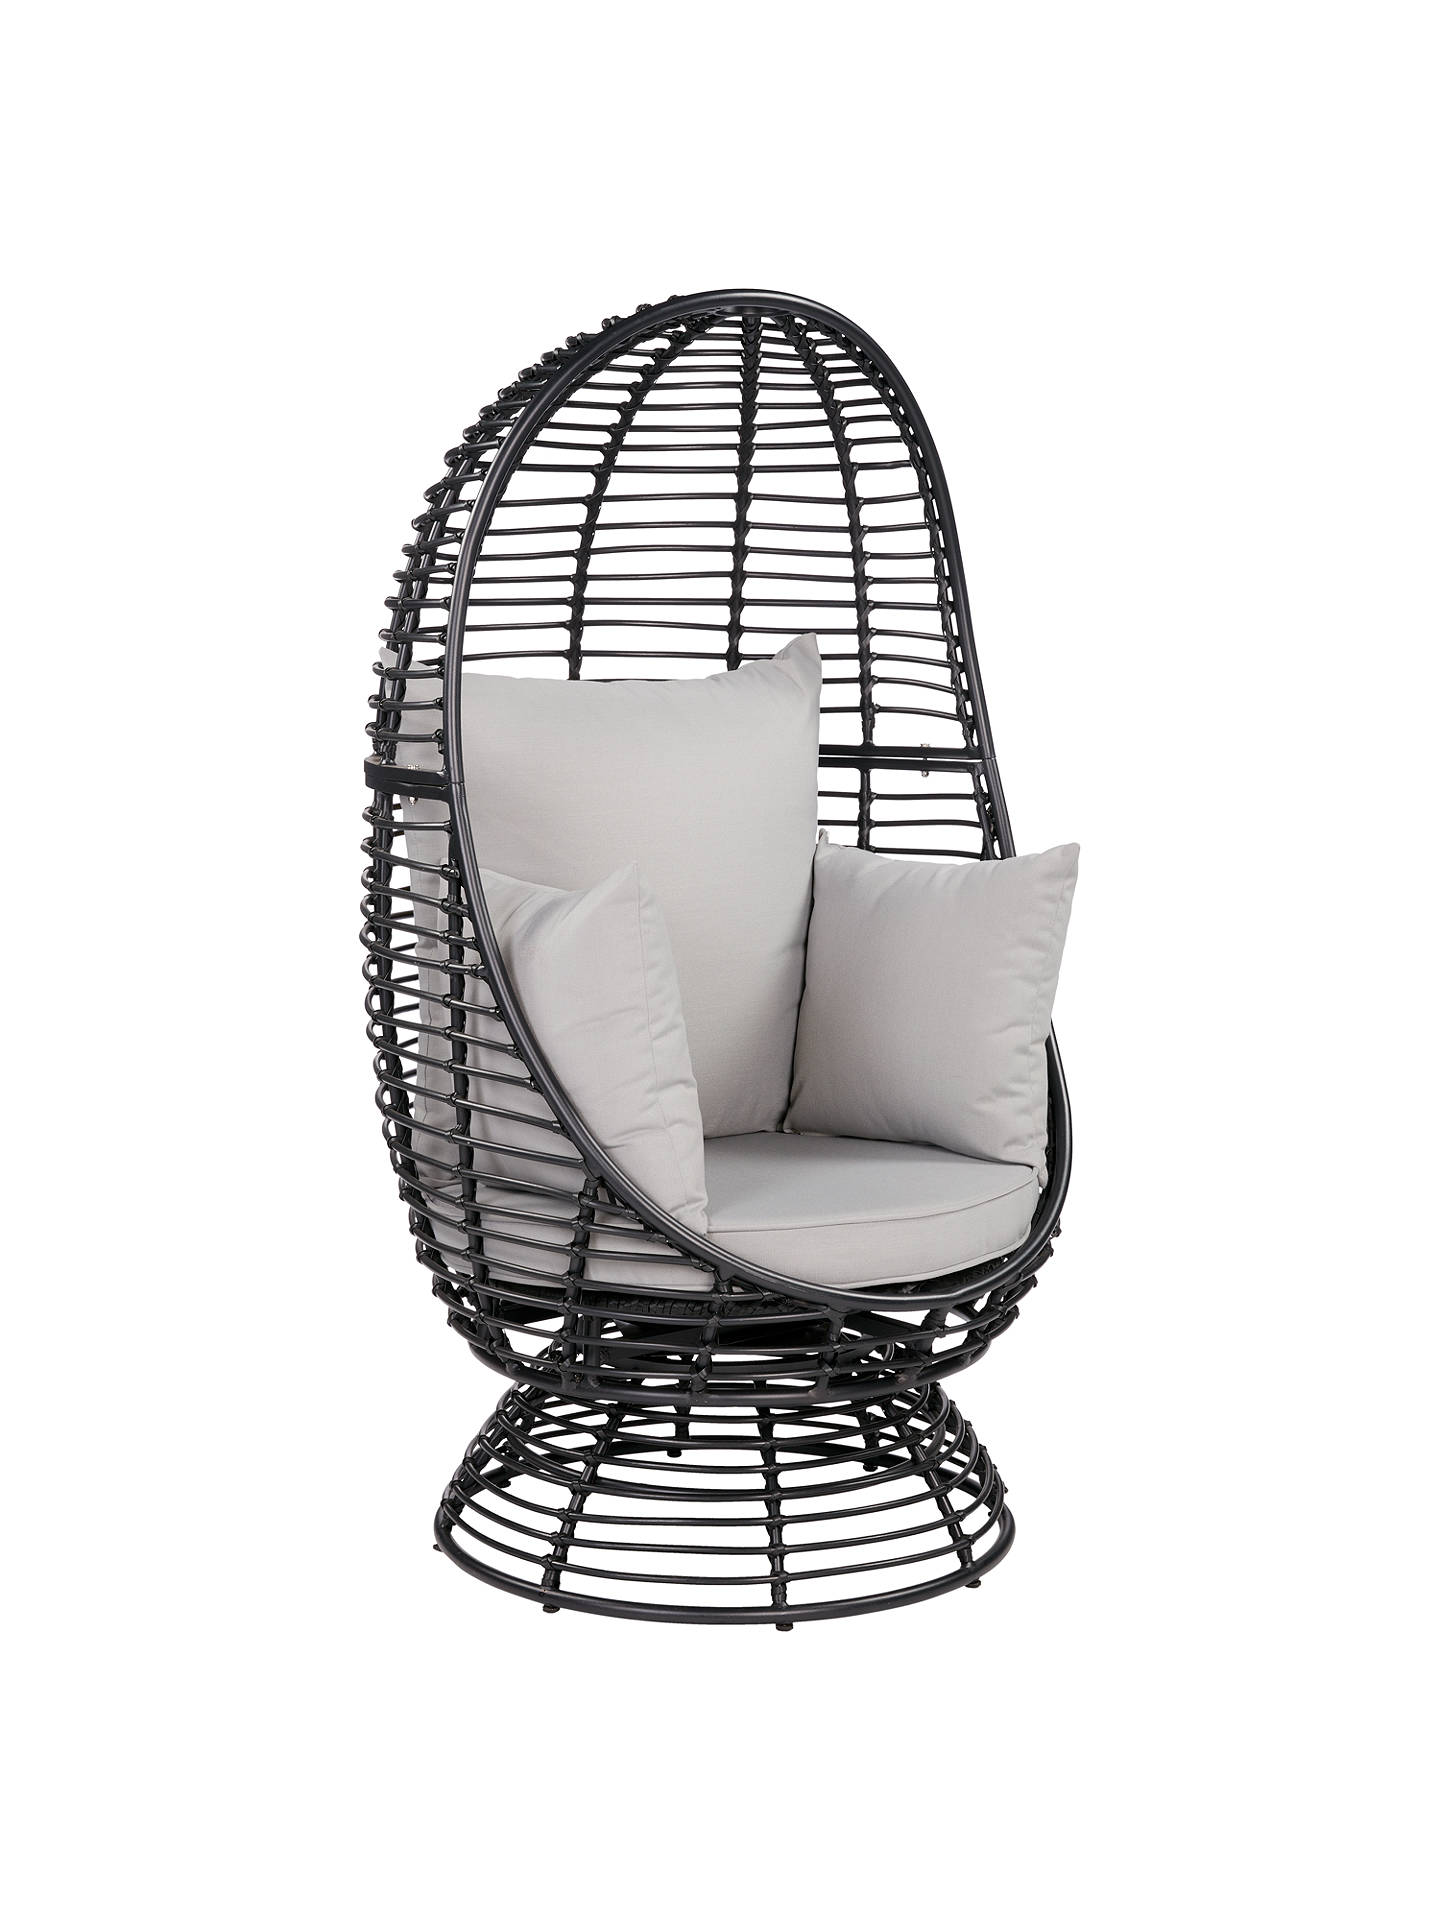 John Lewis & Partners Cabana Swivel Pod Garden Chair, Black